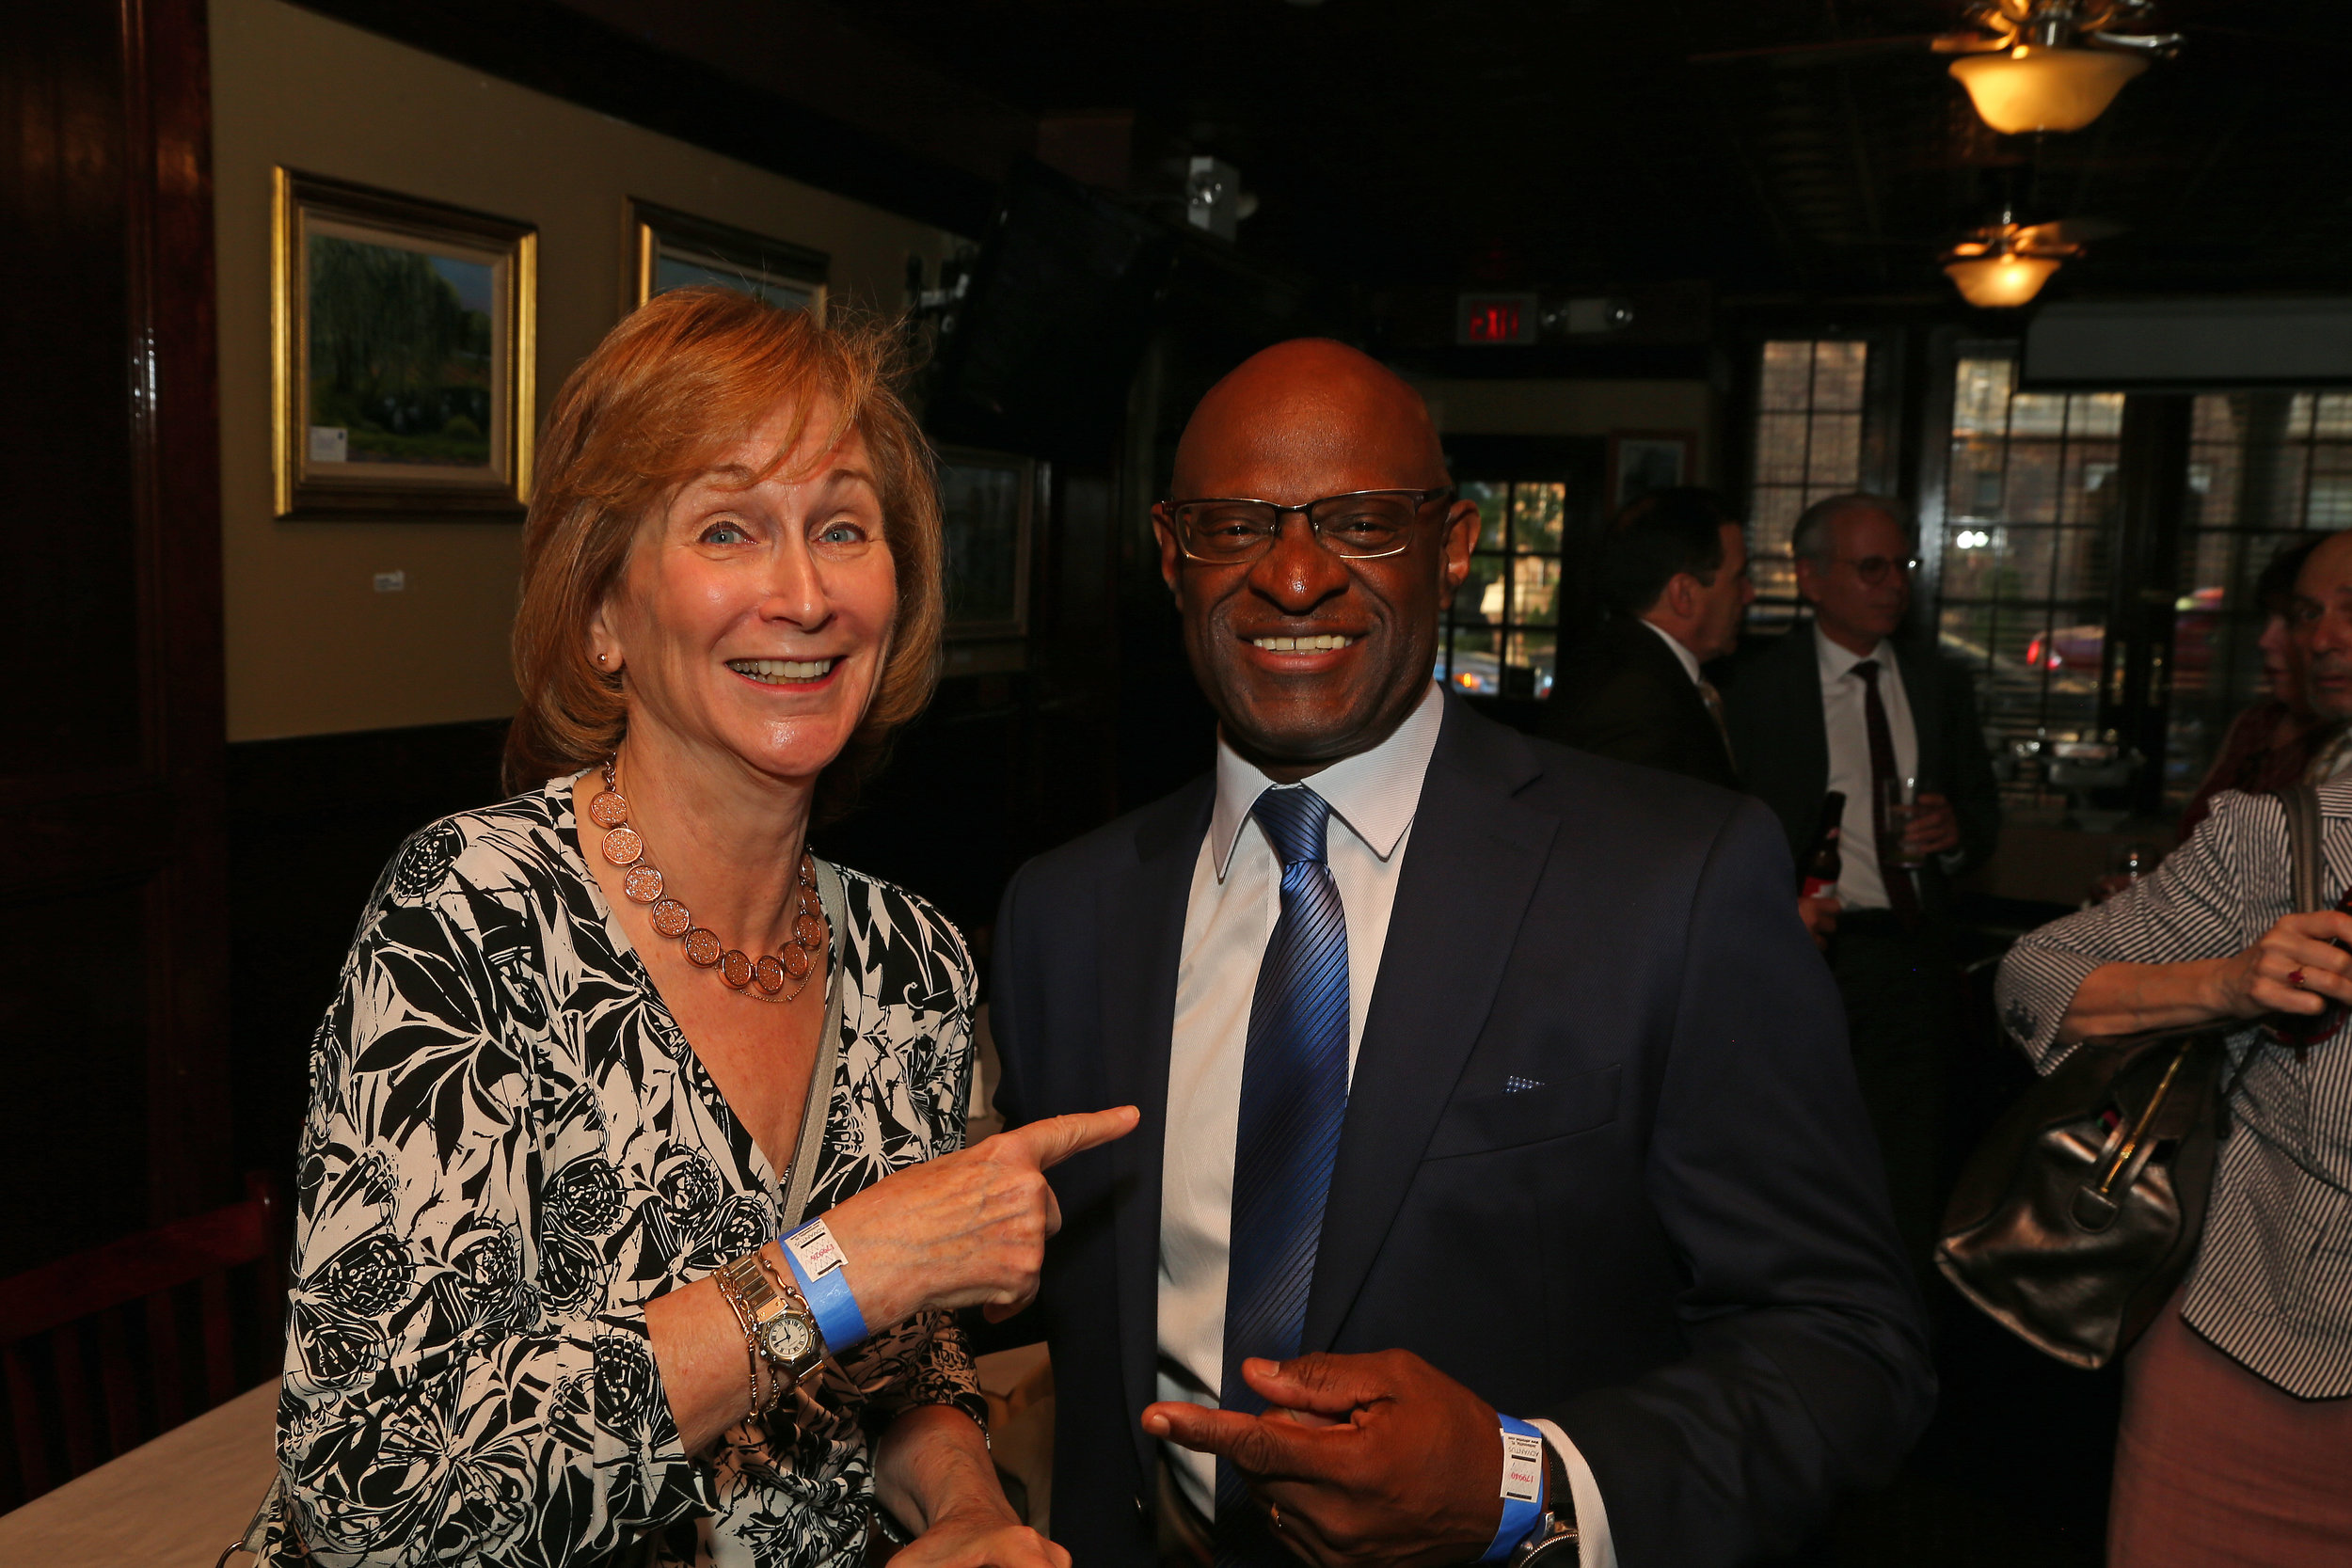 Bonnie Cohen (left) and the Hon. Kenneth Holder.